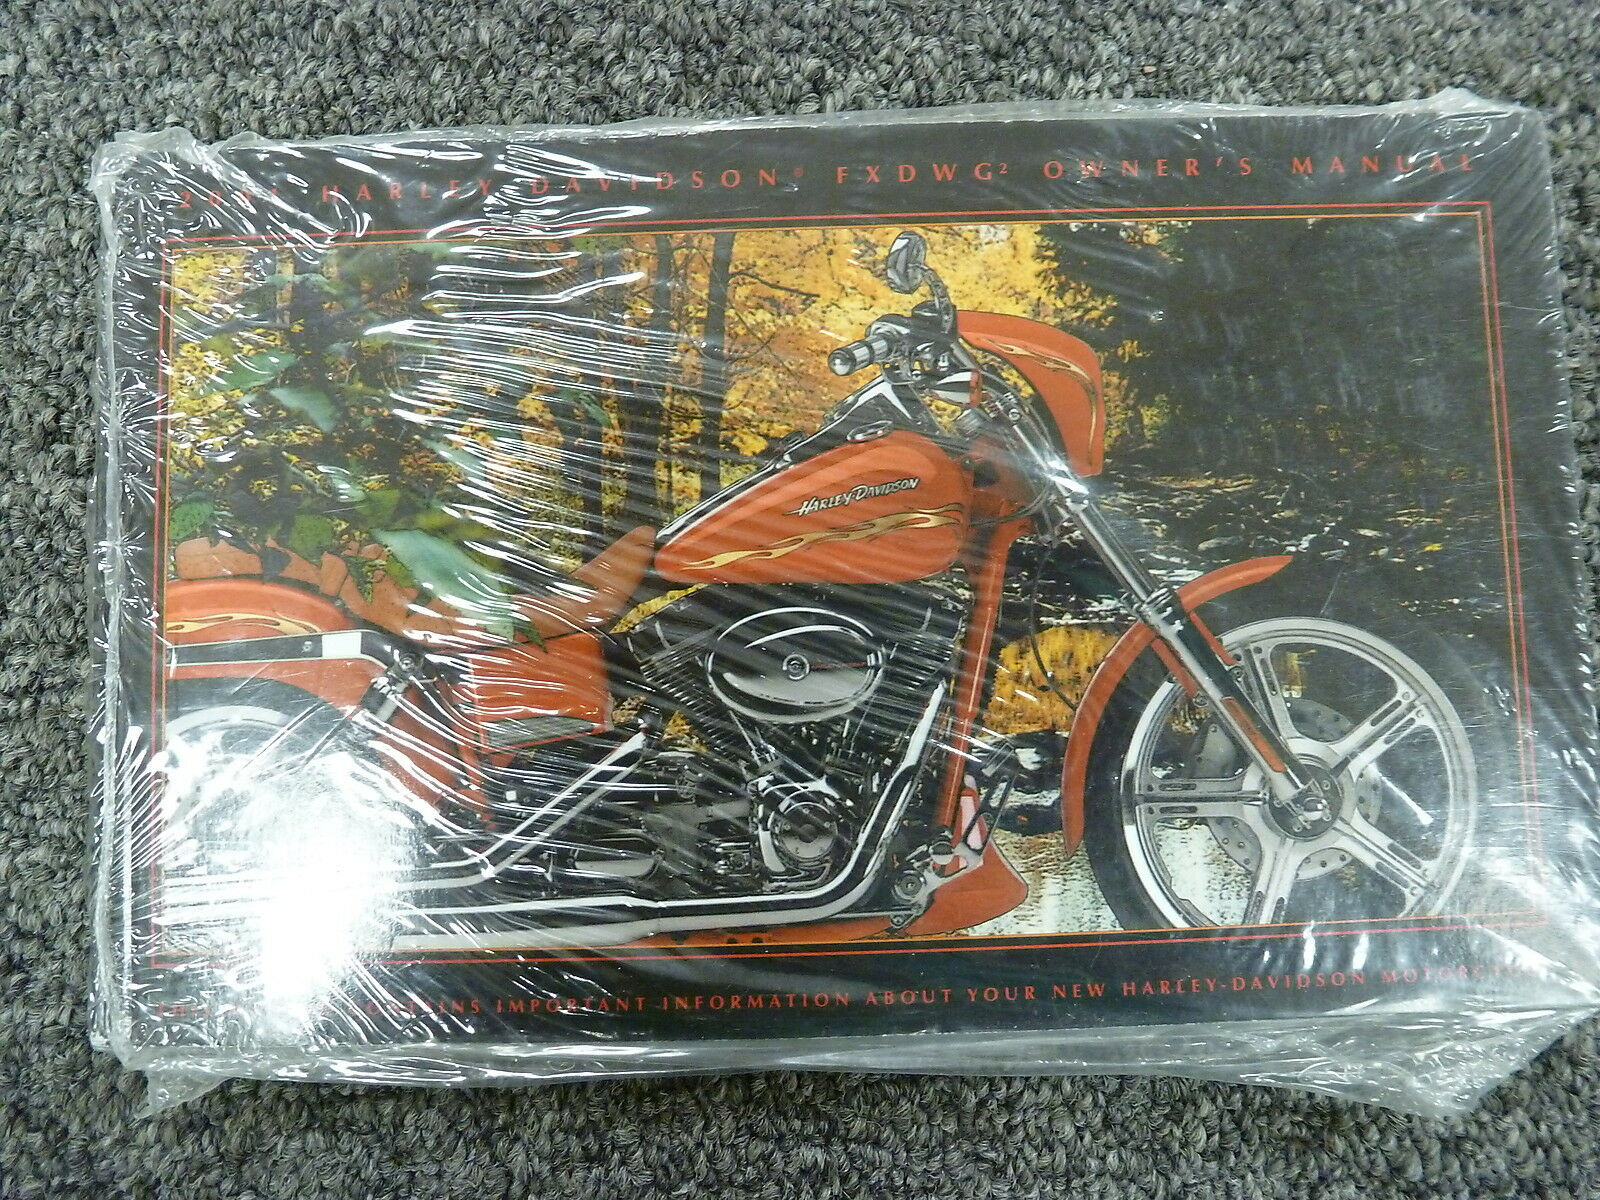 2001 Harley Davidson FXDWG2 Dyna Wide Glide Switchblade Motorcycle Owner  Manual 1 of 1Only 1 available ...